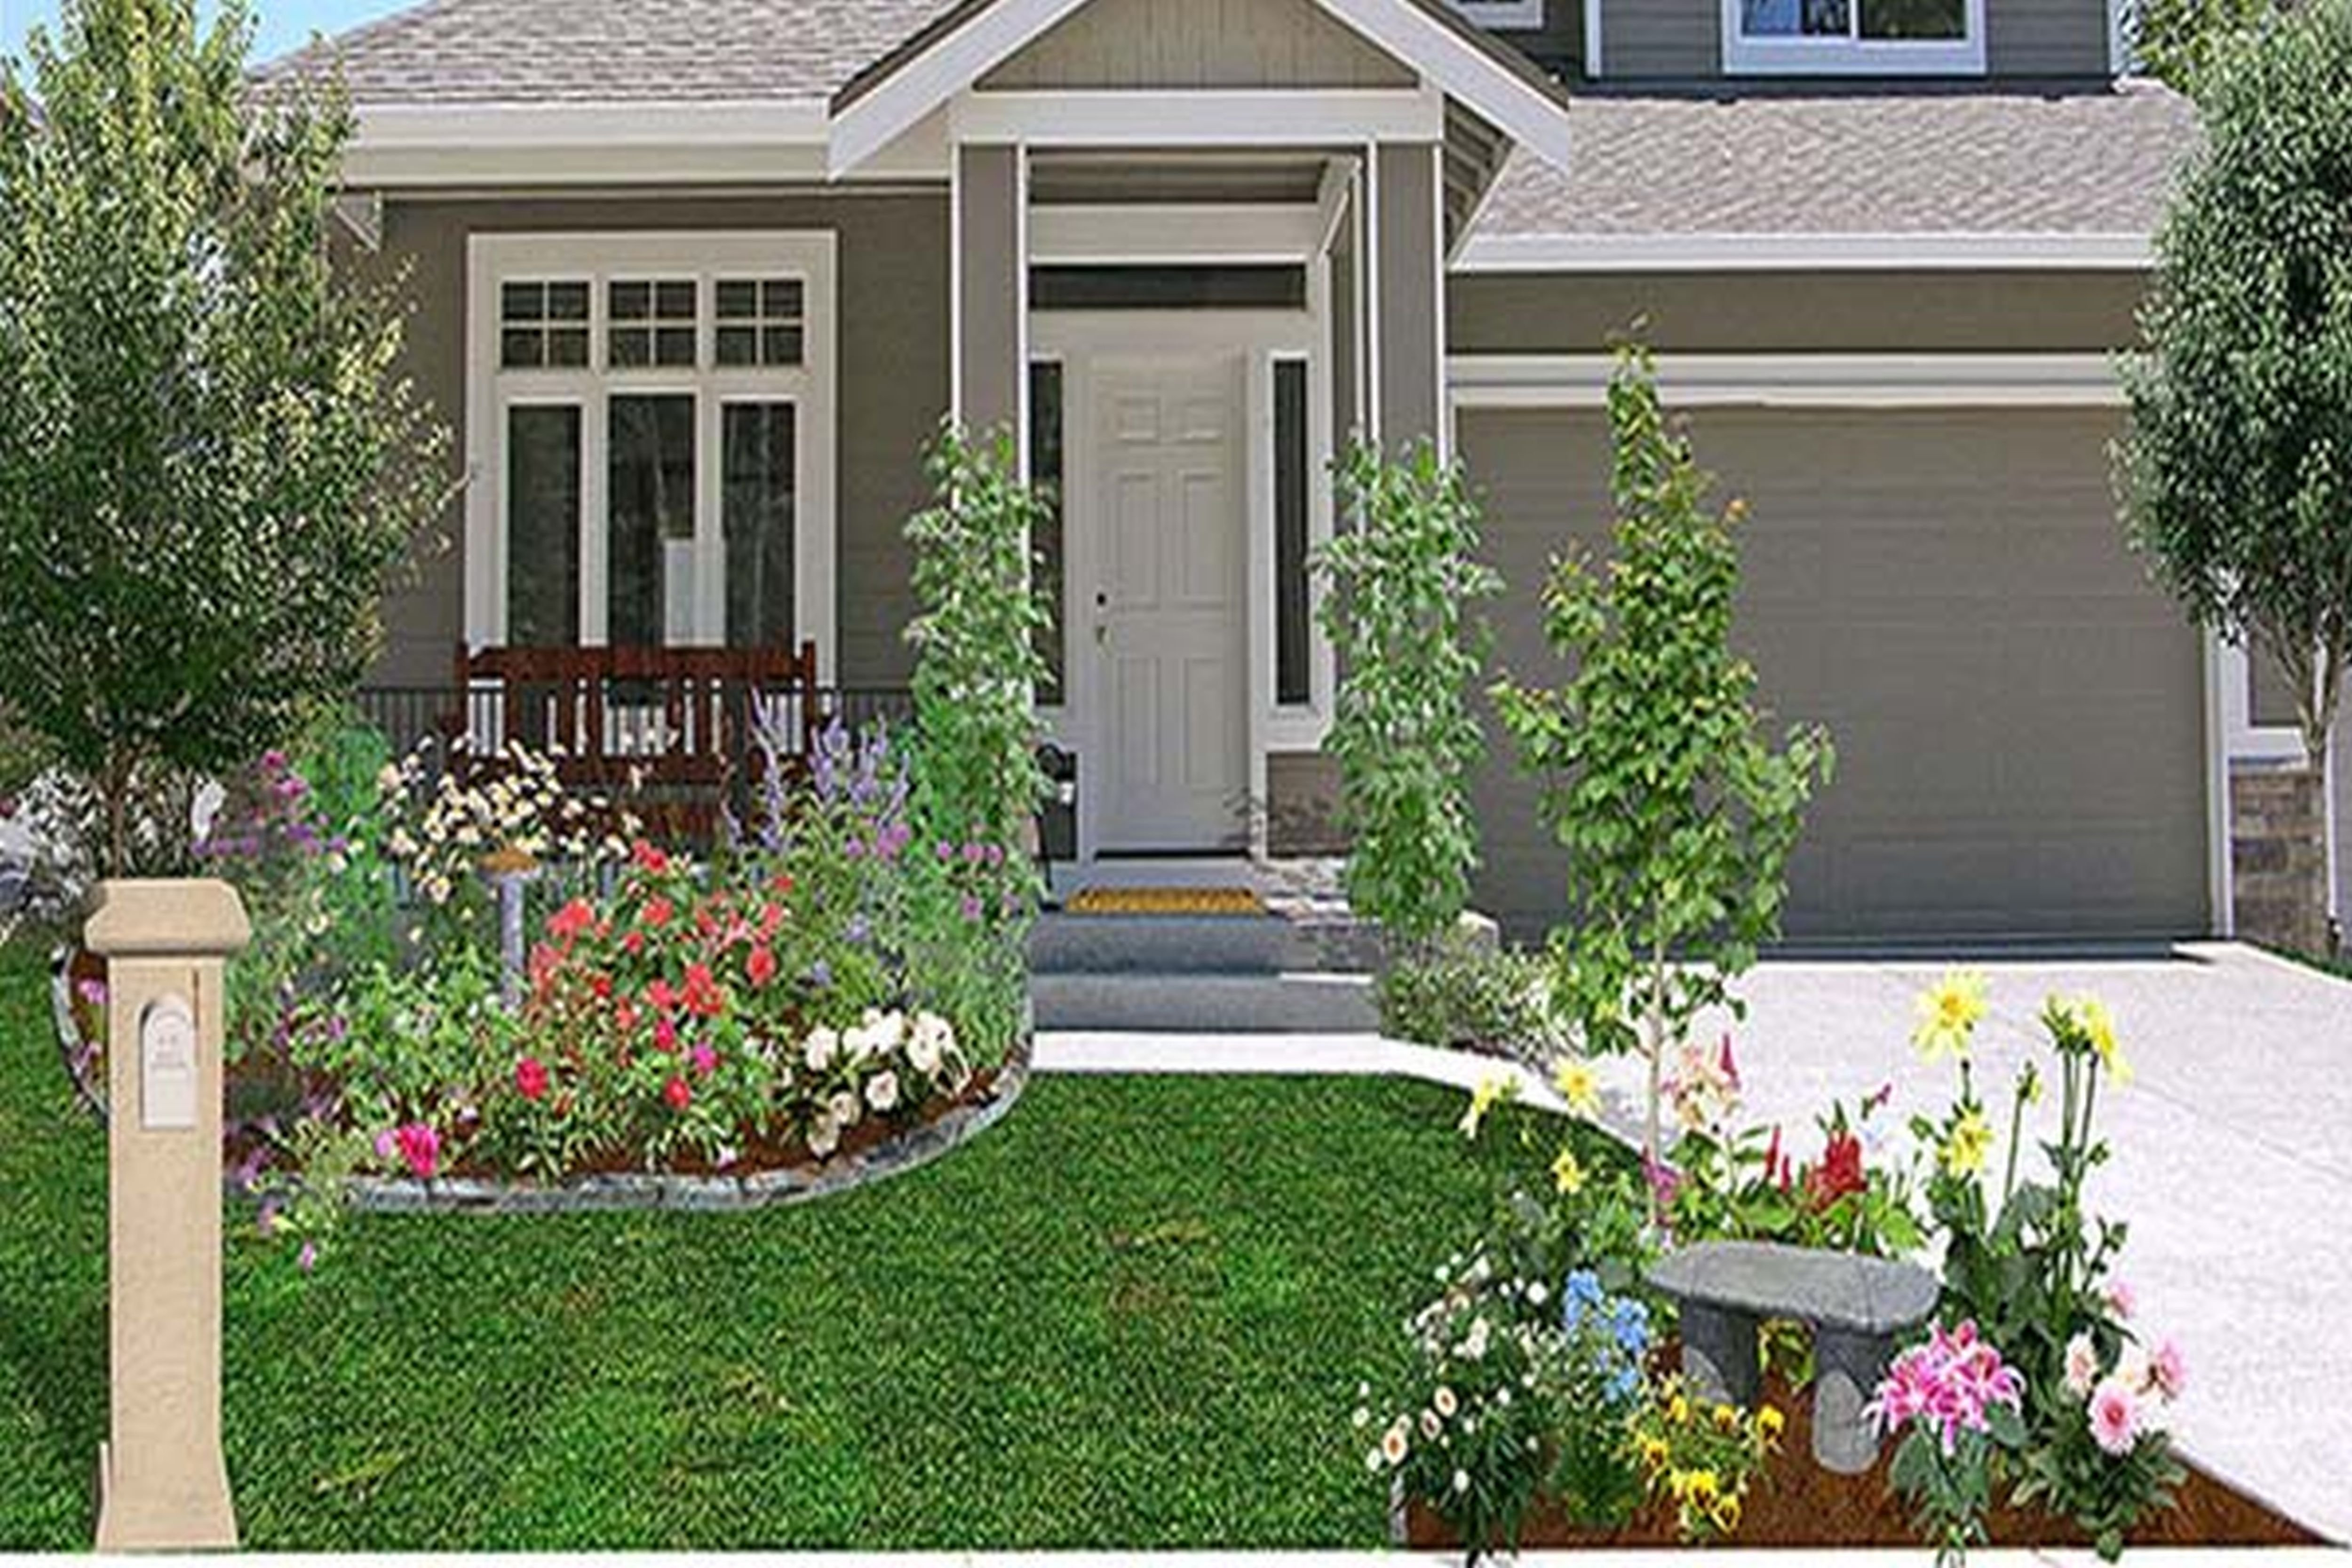 10 Best Landscaping Ideas For Front Yard On A Budget 2020 on Landscaping Ideas For Front Yard On A Budget id=62607